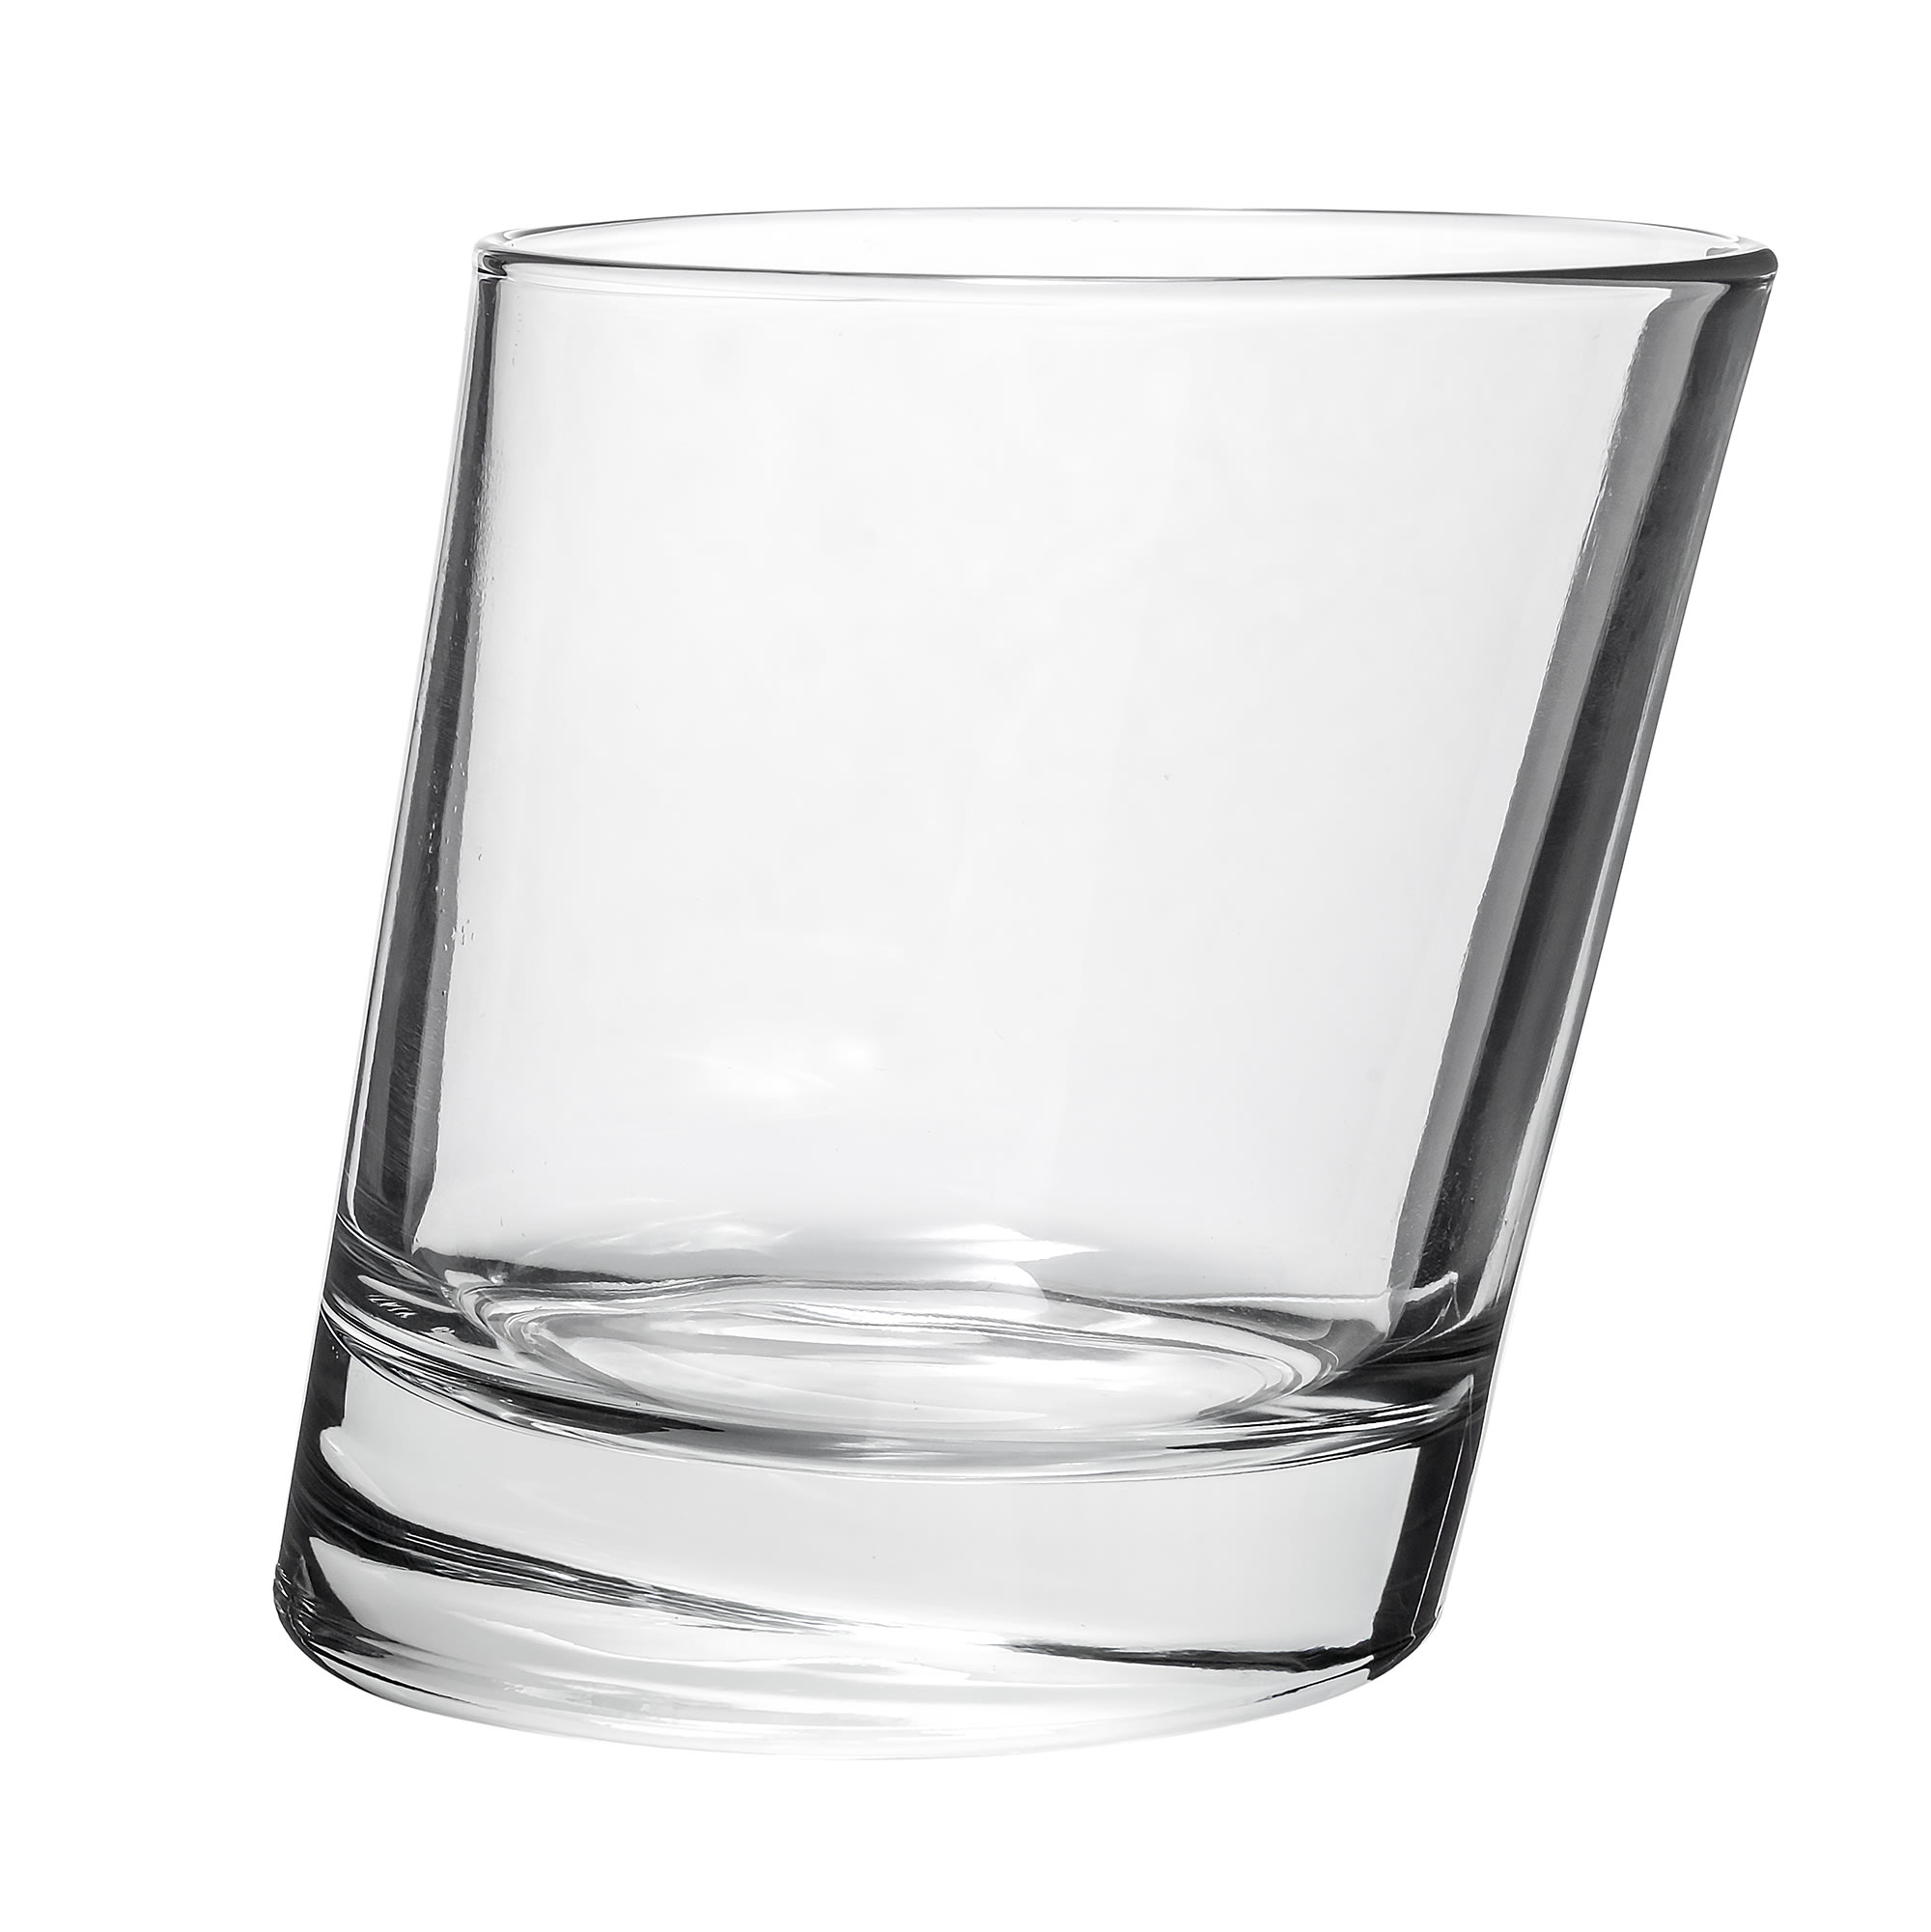 Libbey 11006821 11.75-oz Double Old Fashioned Glass - Pisa